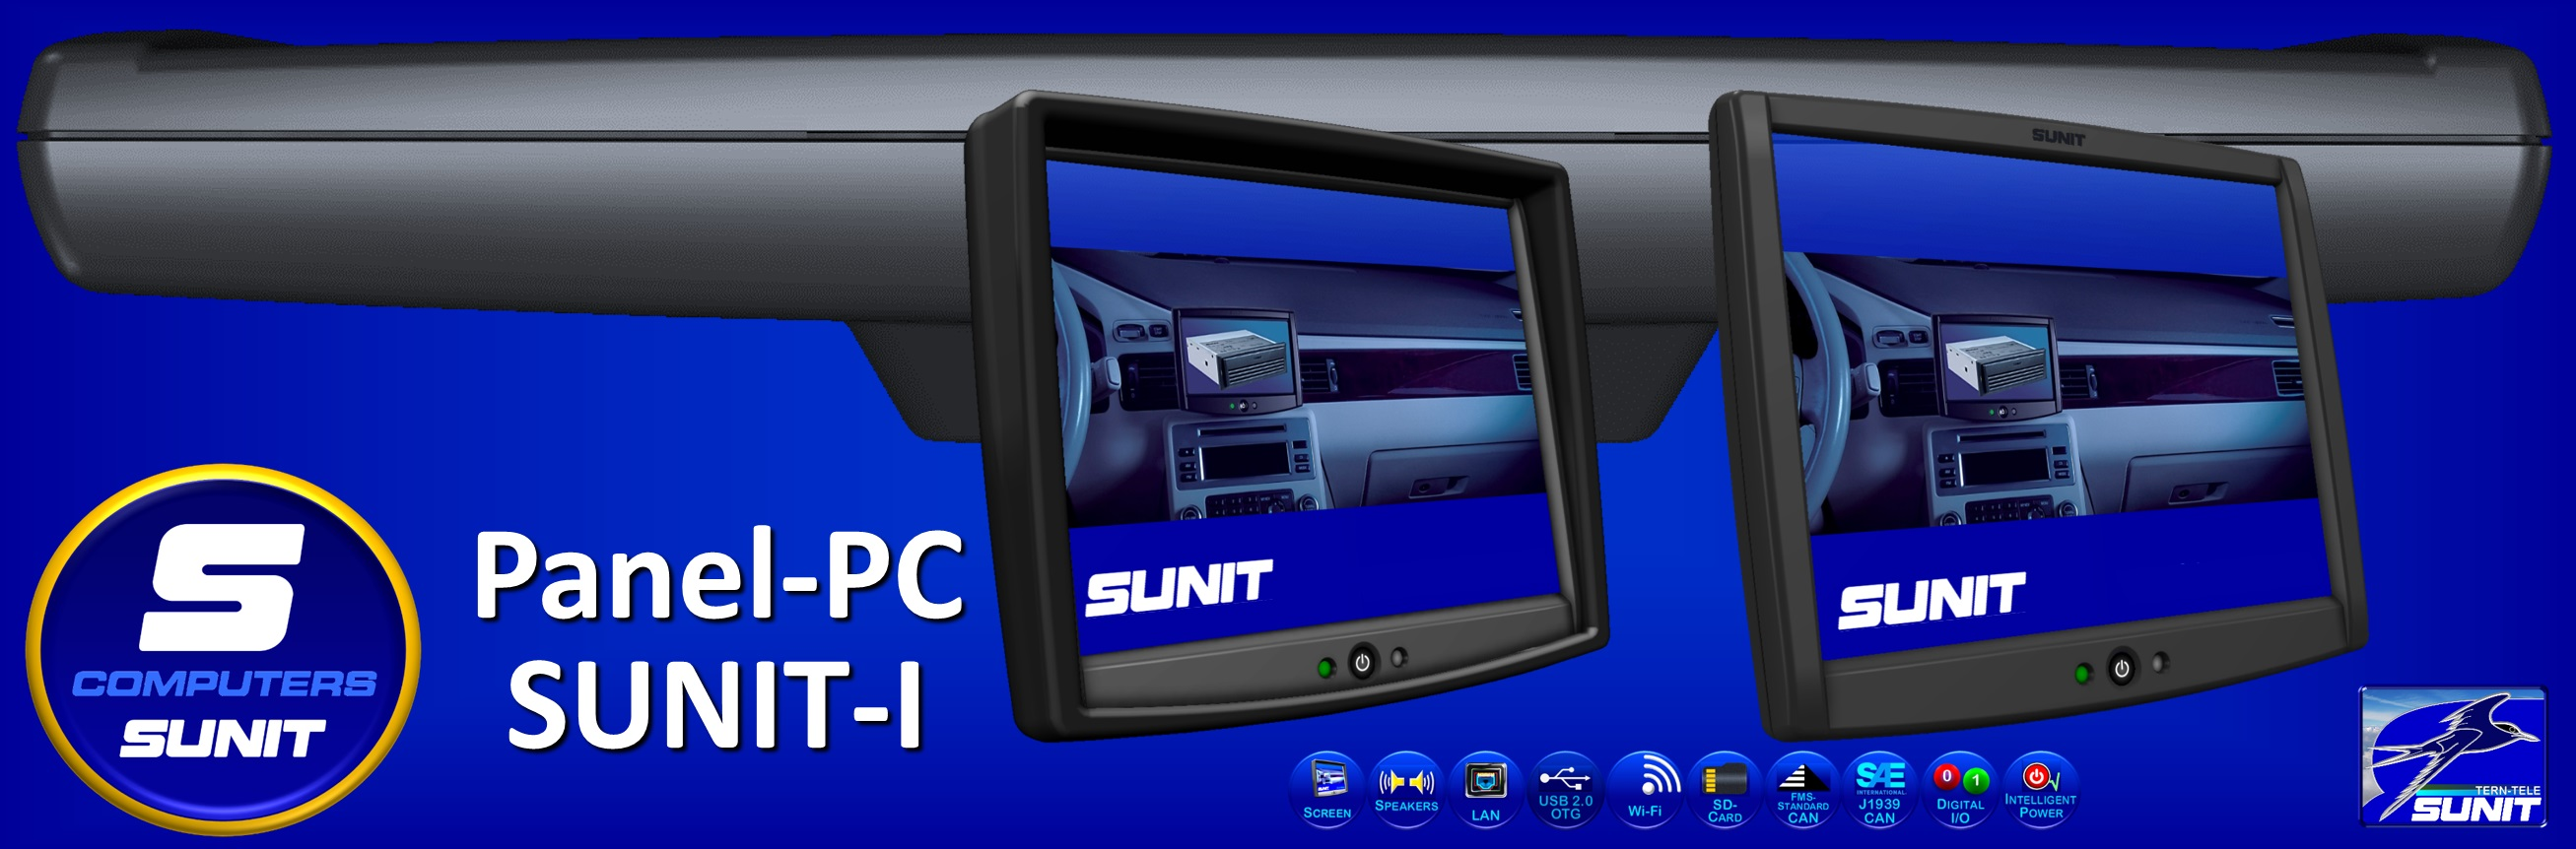 Sunit-I All-in-One Panel-PC